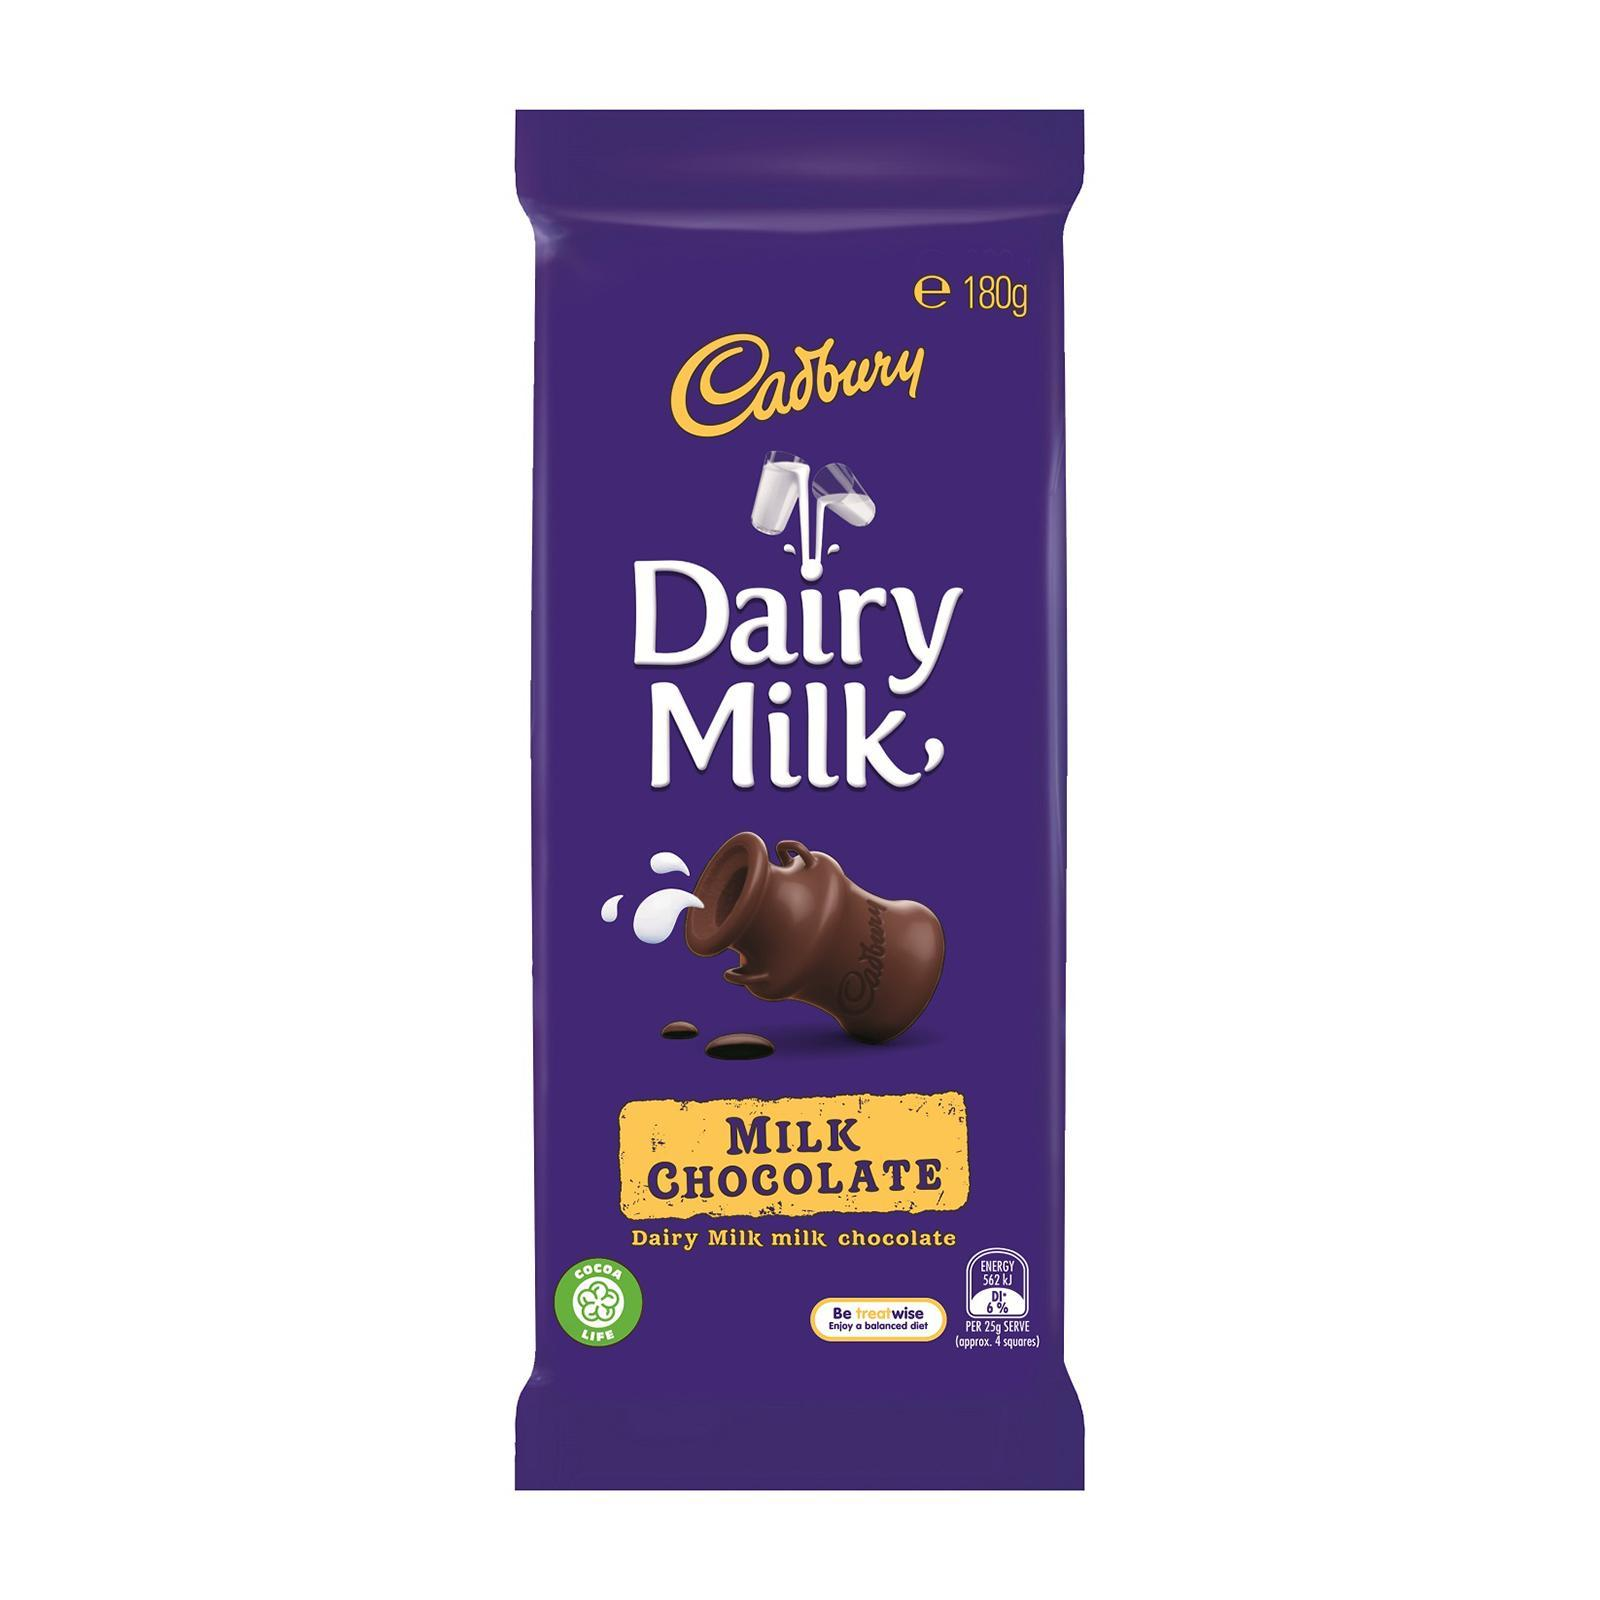 Cadbury Dairy Milk Blackforest Block Chocolate